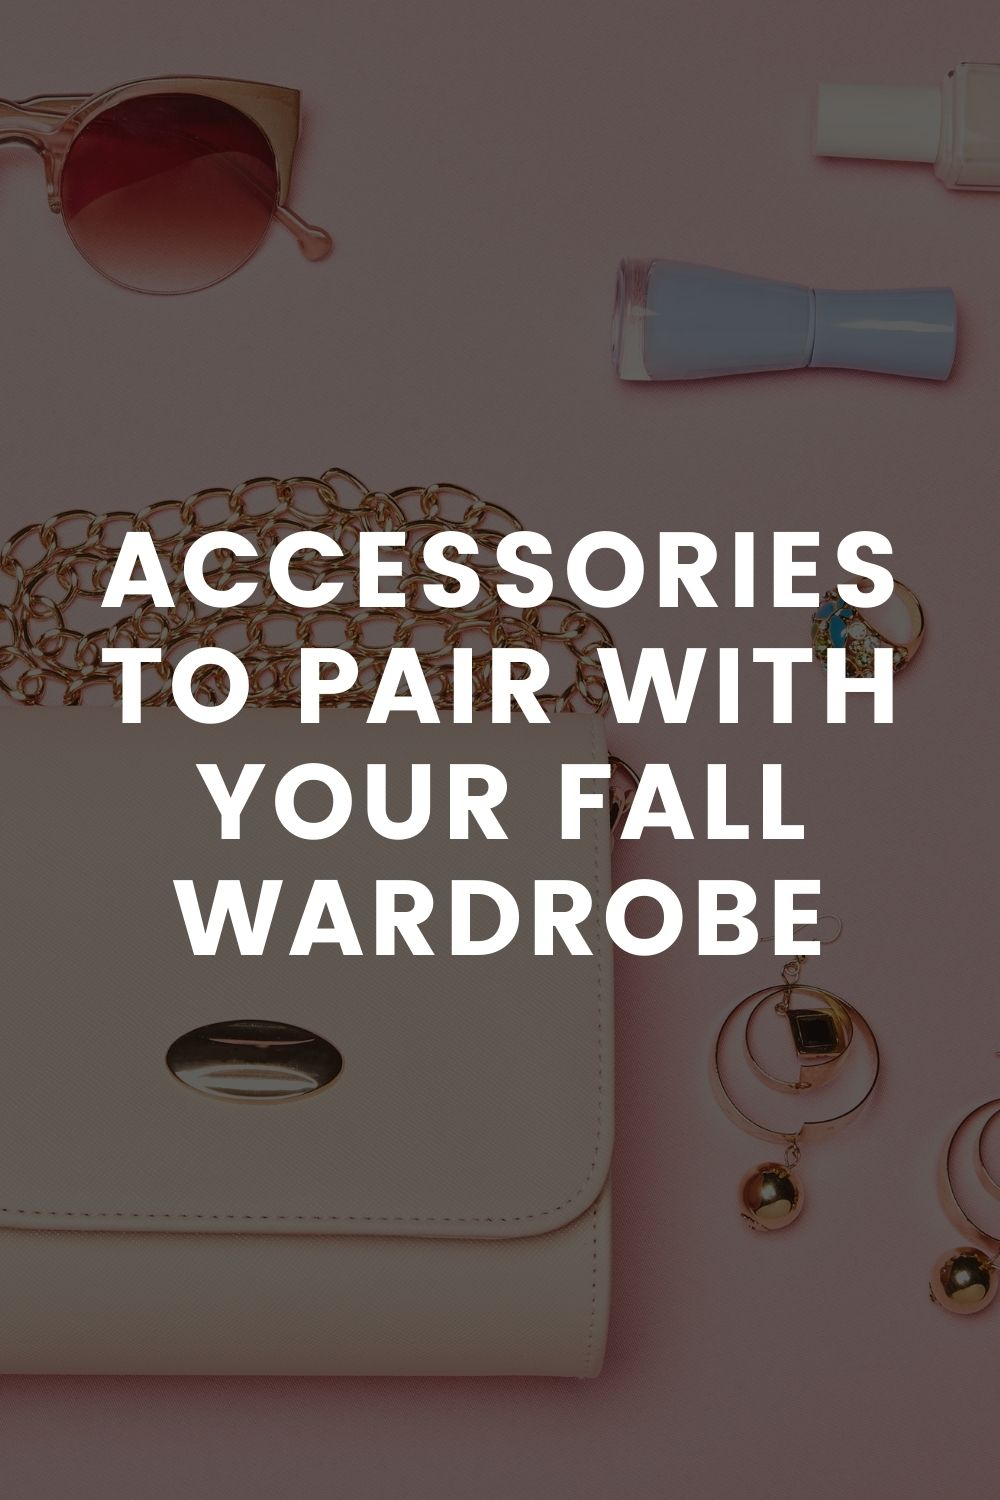 Accessories to Pair with your Fall Wardrobe